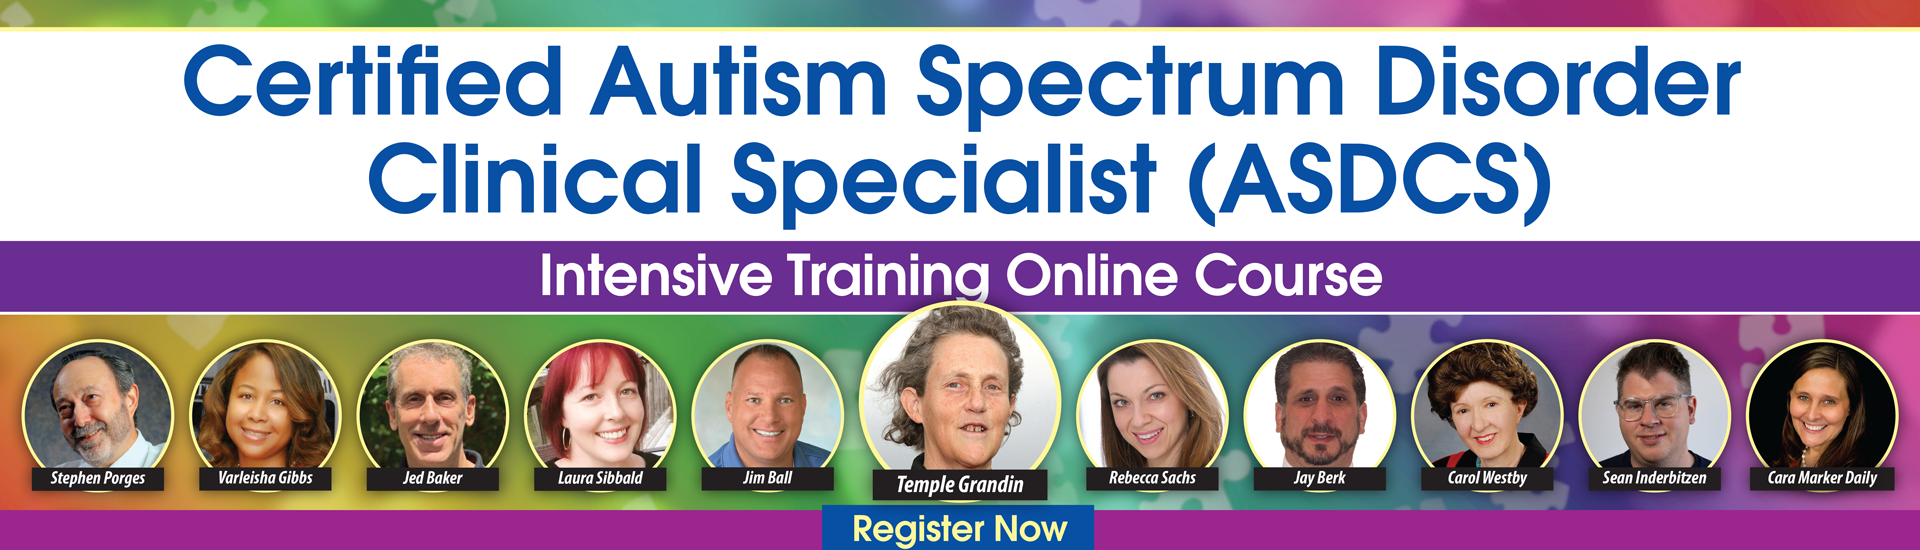 Certified Autism Spectrum Disorder Clinical Specialist Intensive Training (ASDCS)